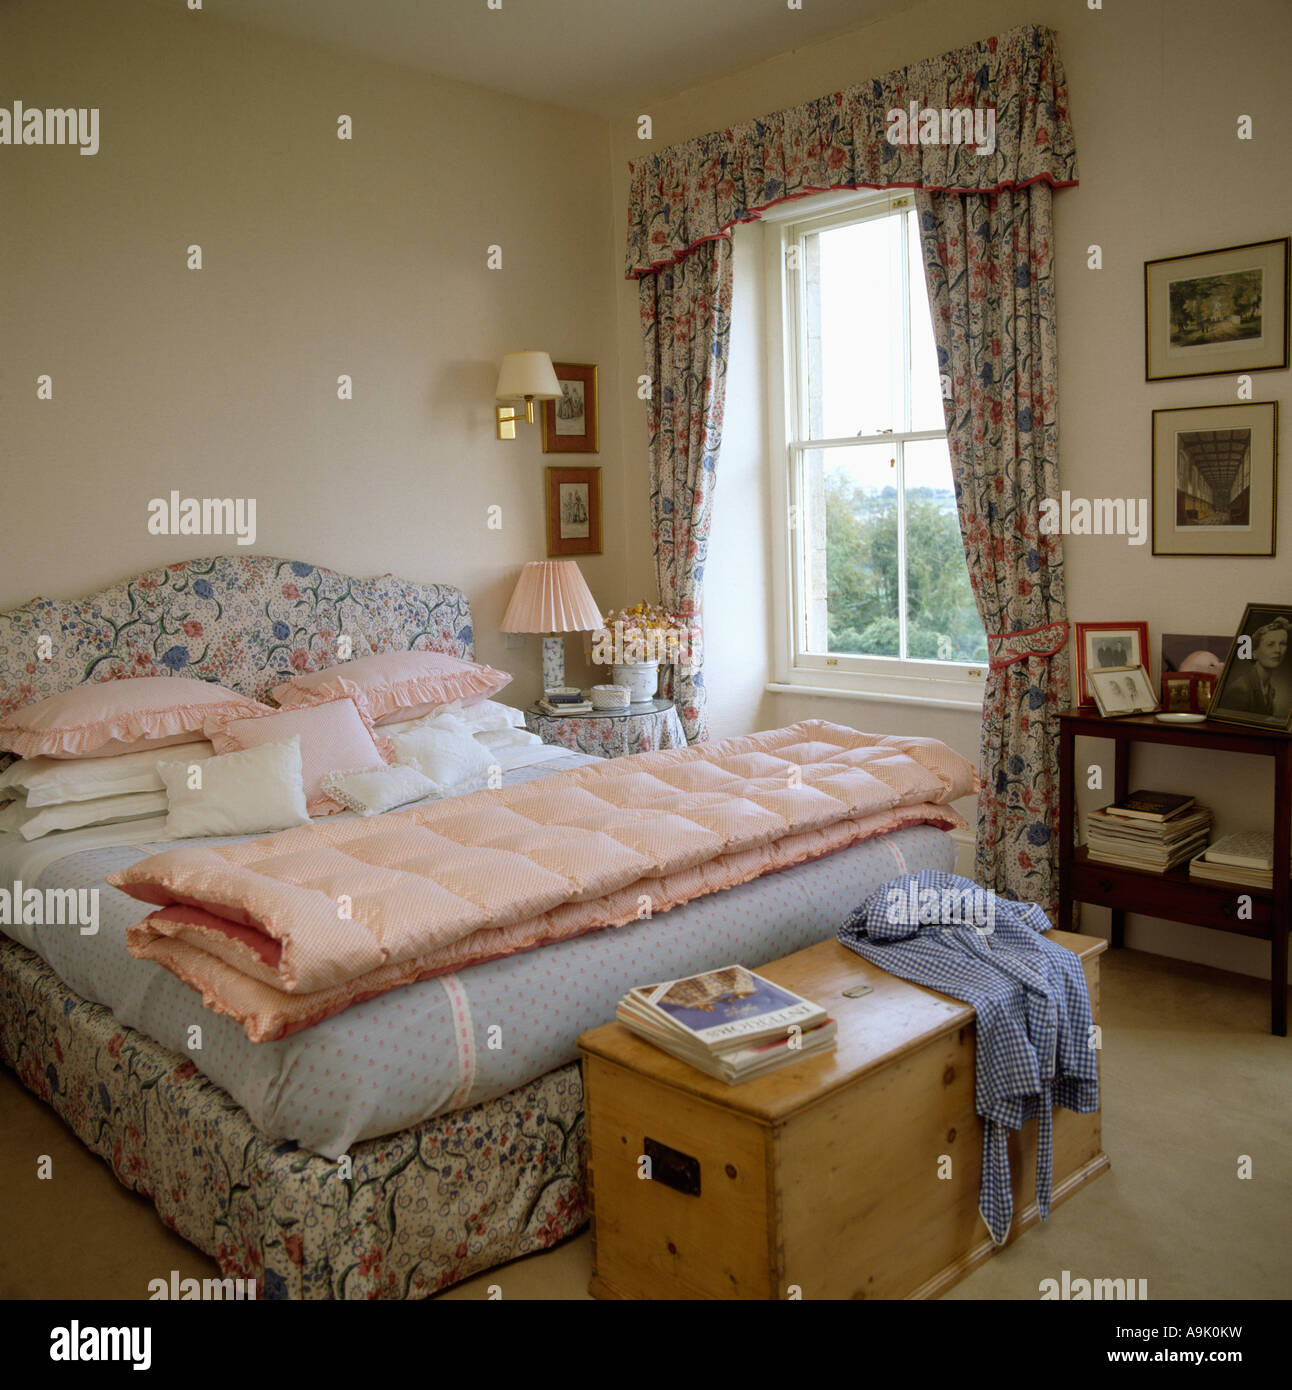 Pink quilt on bed with upholstered floral headboard and matching curtains in bedroom with pine chest below the bed